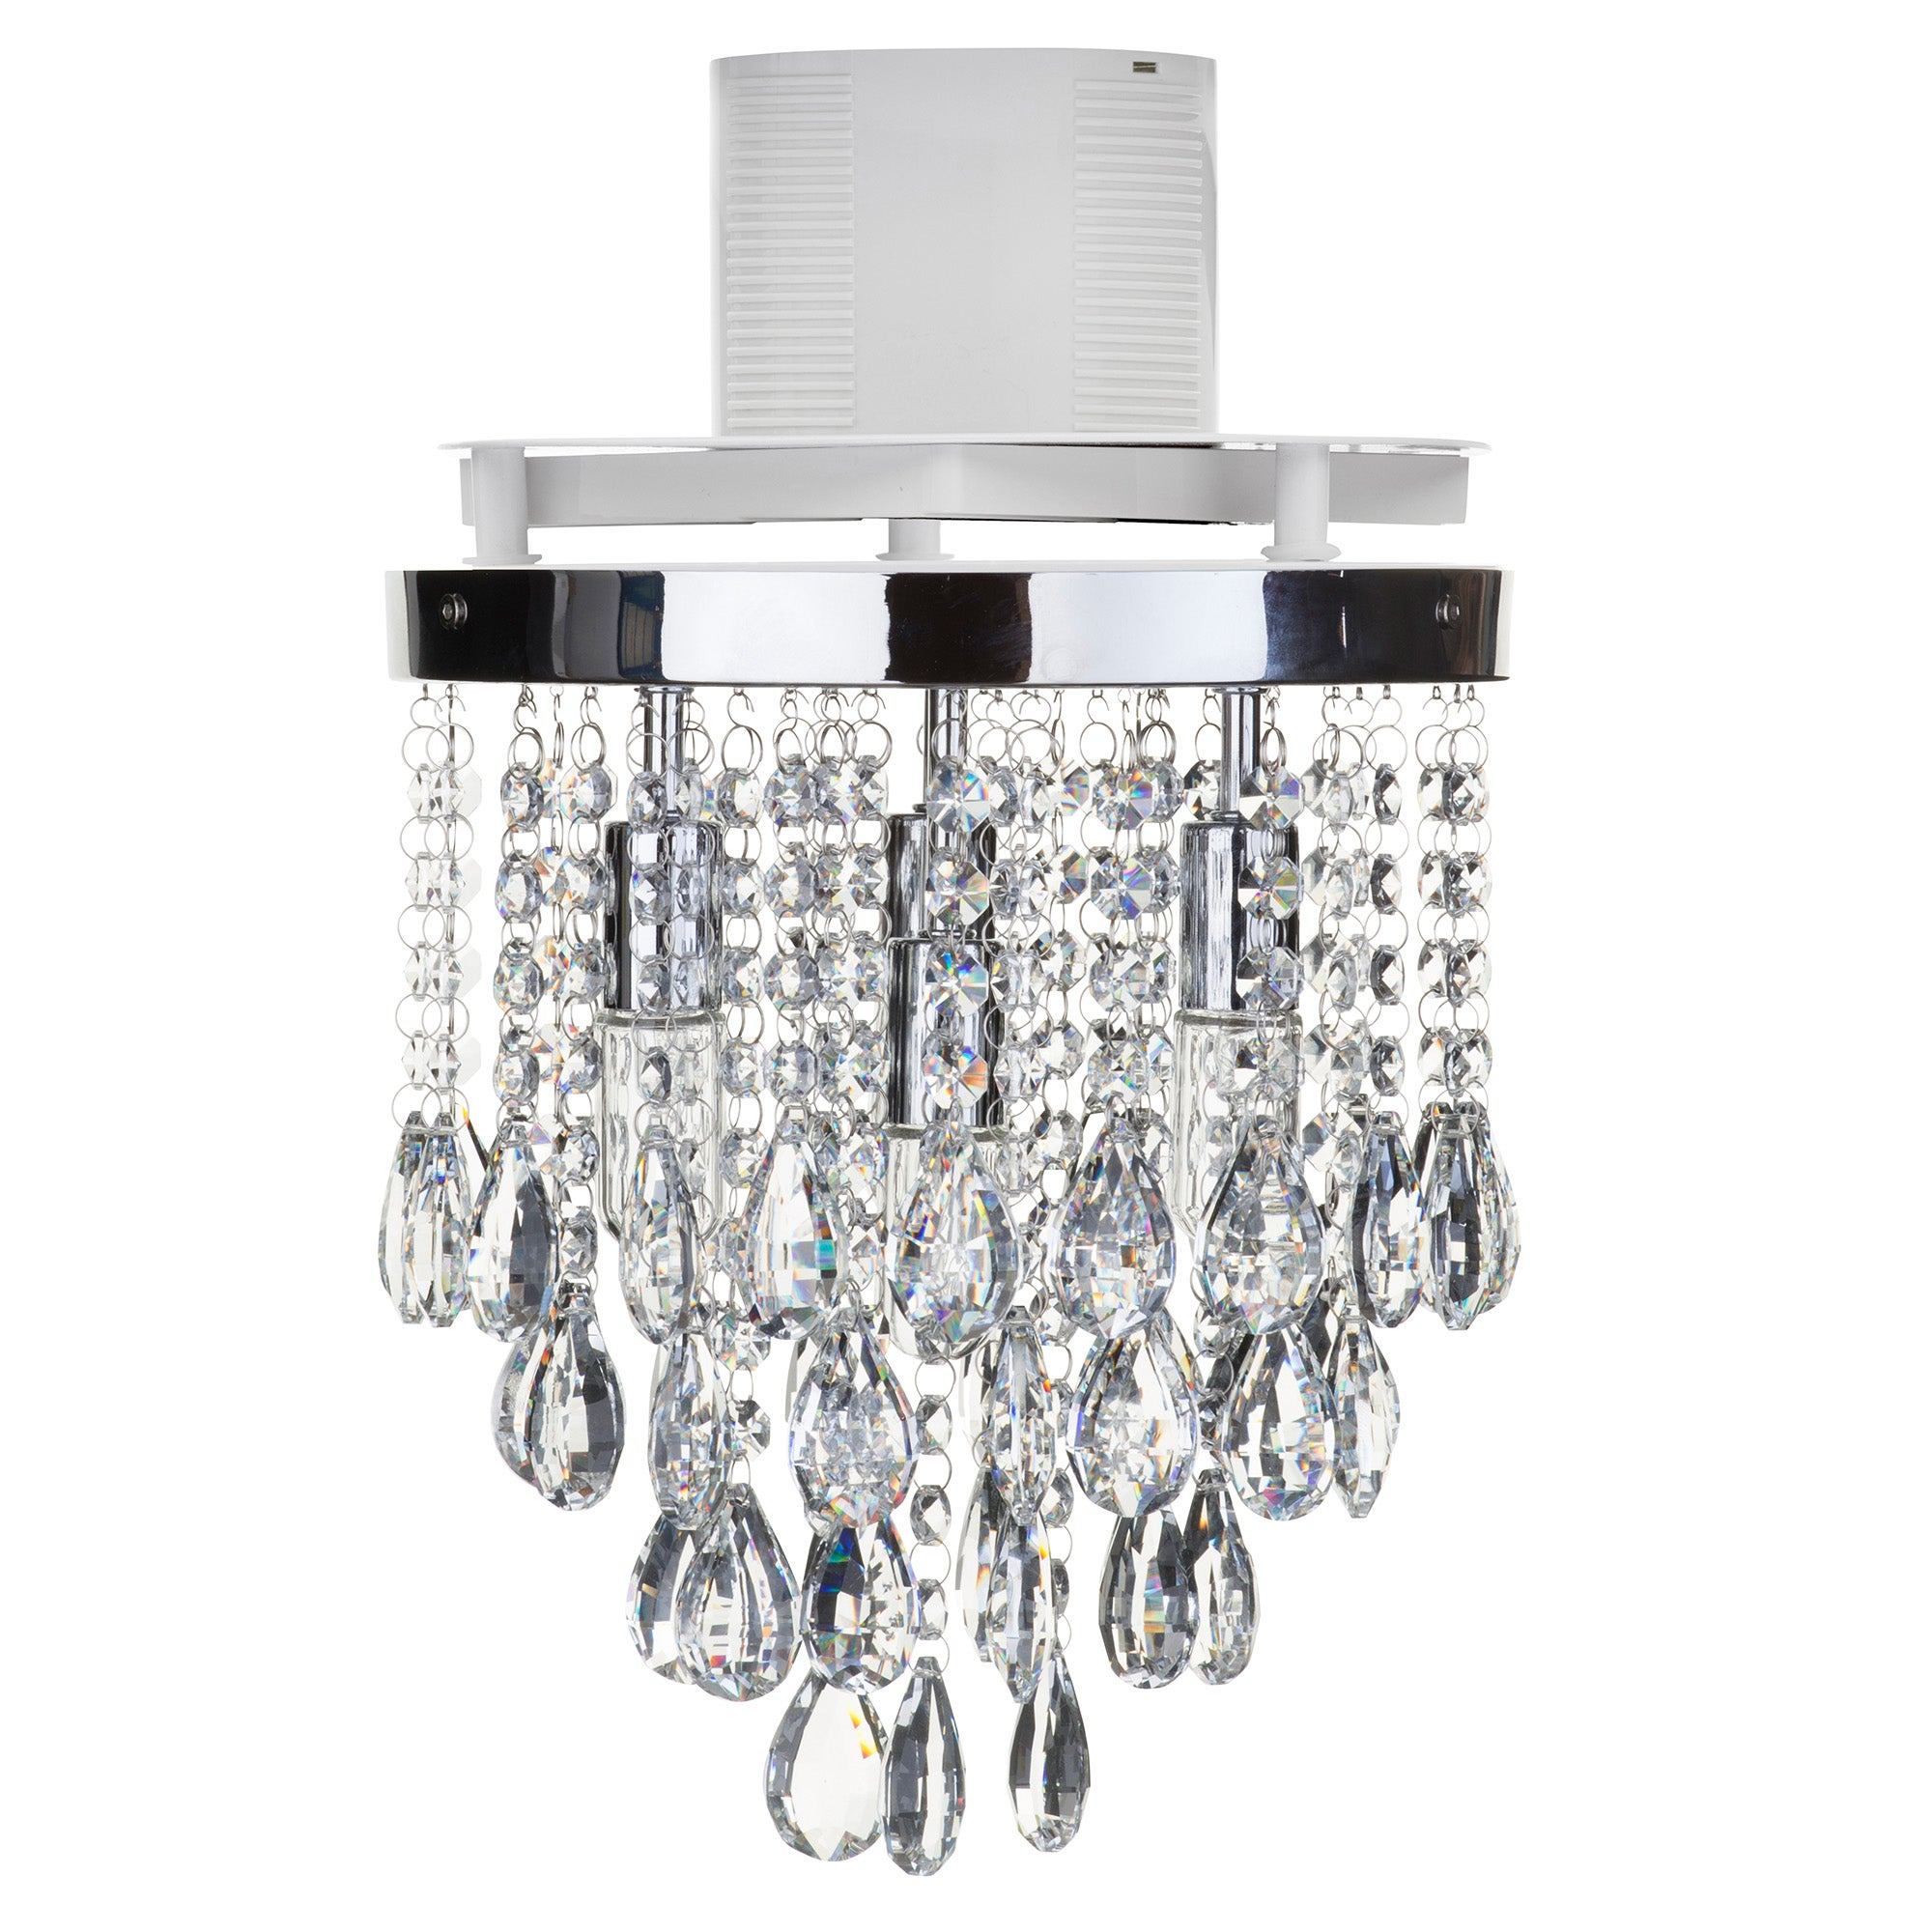 Image of Verano 4 Light Flush Ceiling Fitting and Extractor Fan Chrome